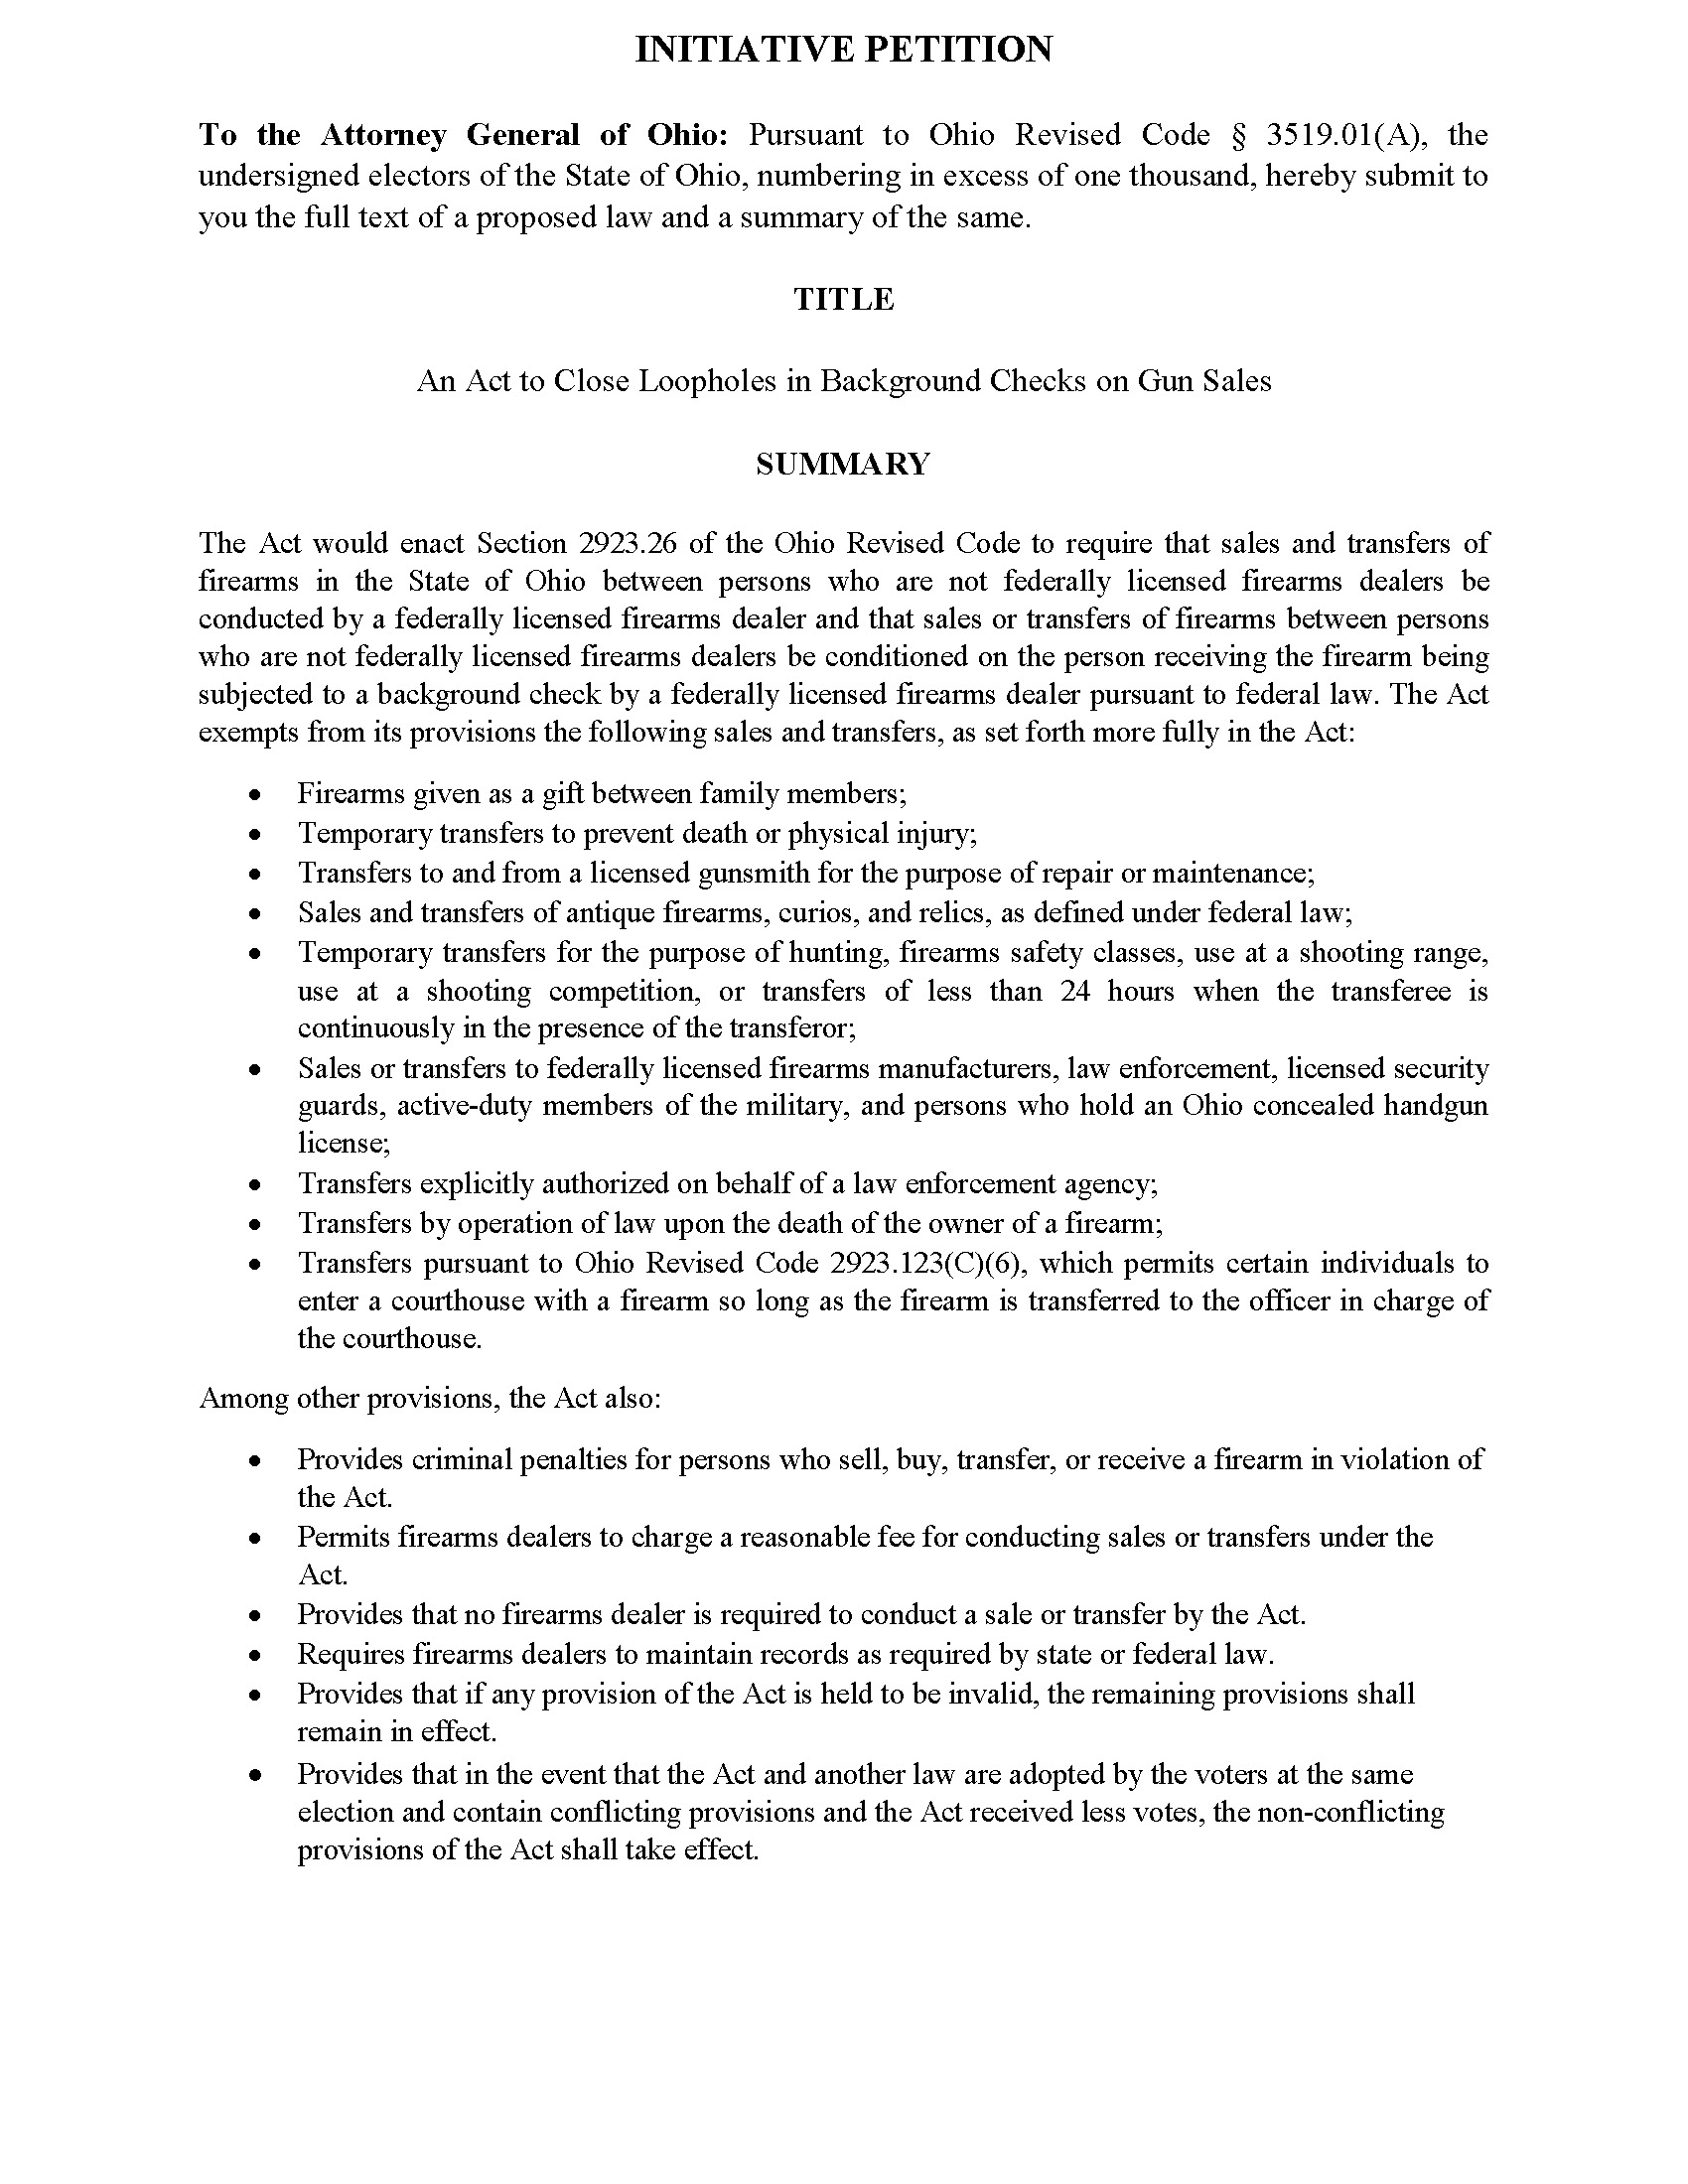 Summary and Statute.second submission - summary and text only_Page_1.jpg